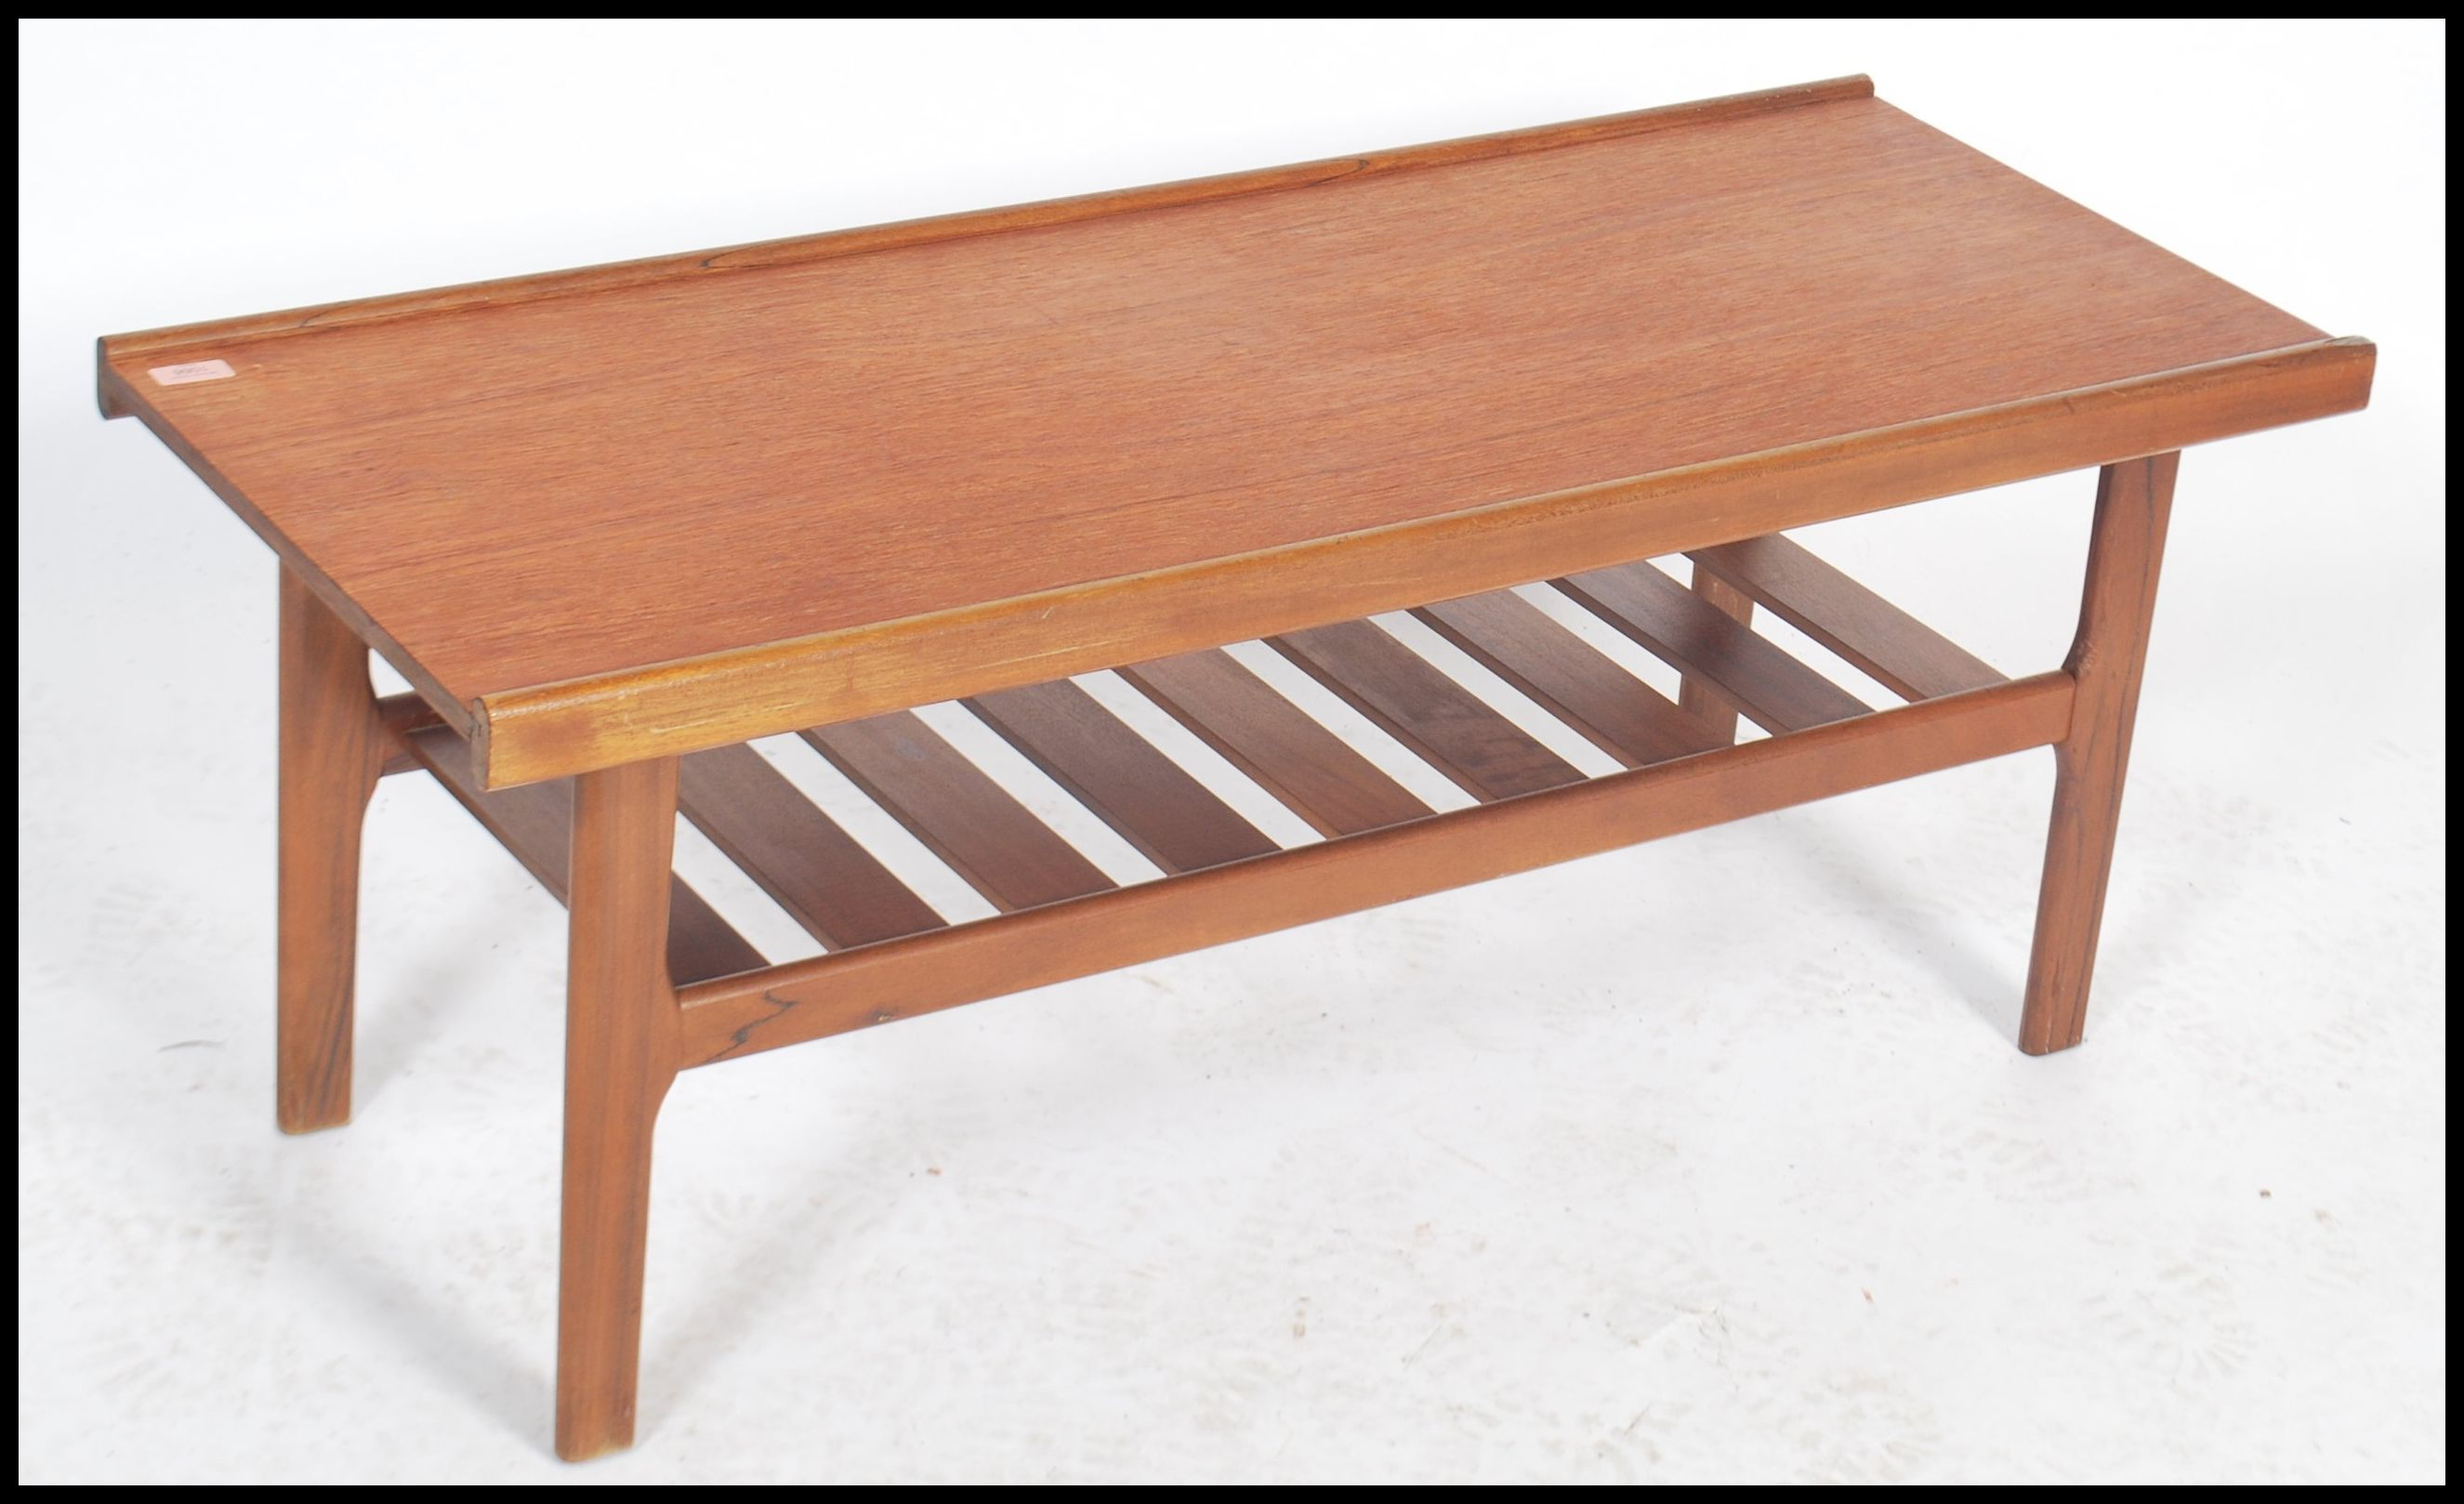 Lot 1066 - A vintage mid century teak wood coffee table with a banded edge rail and magazine rack to the